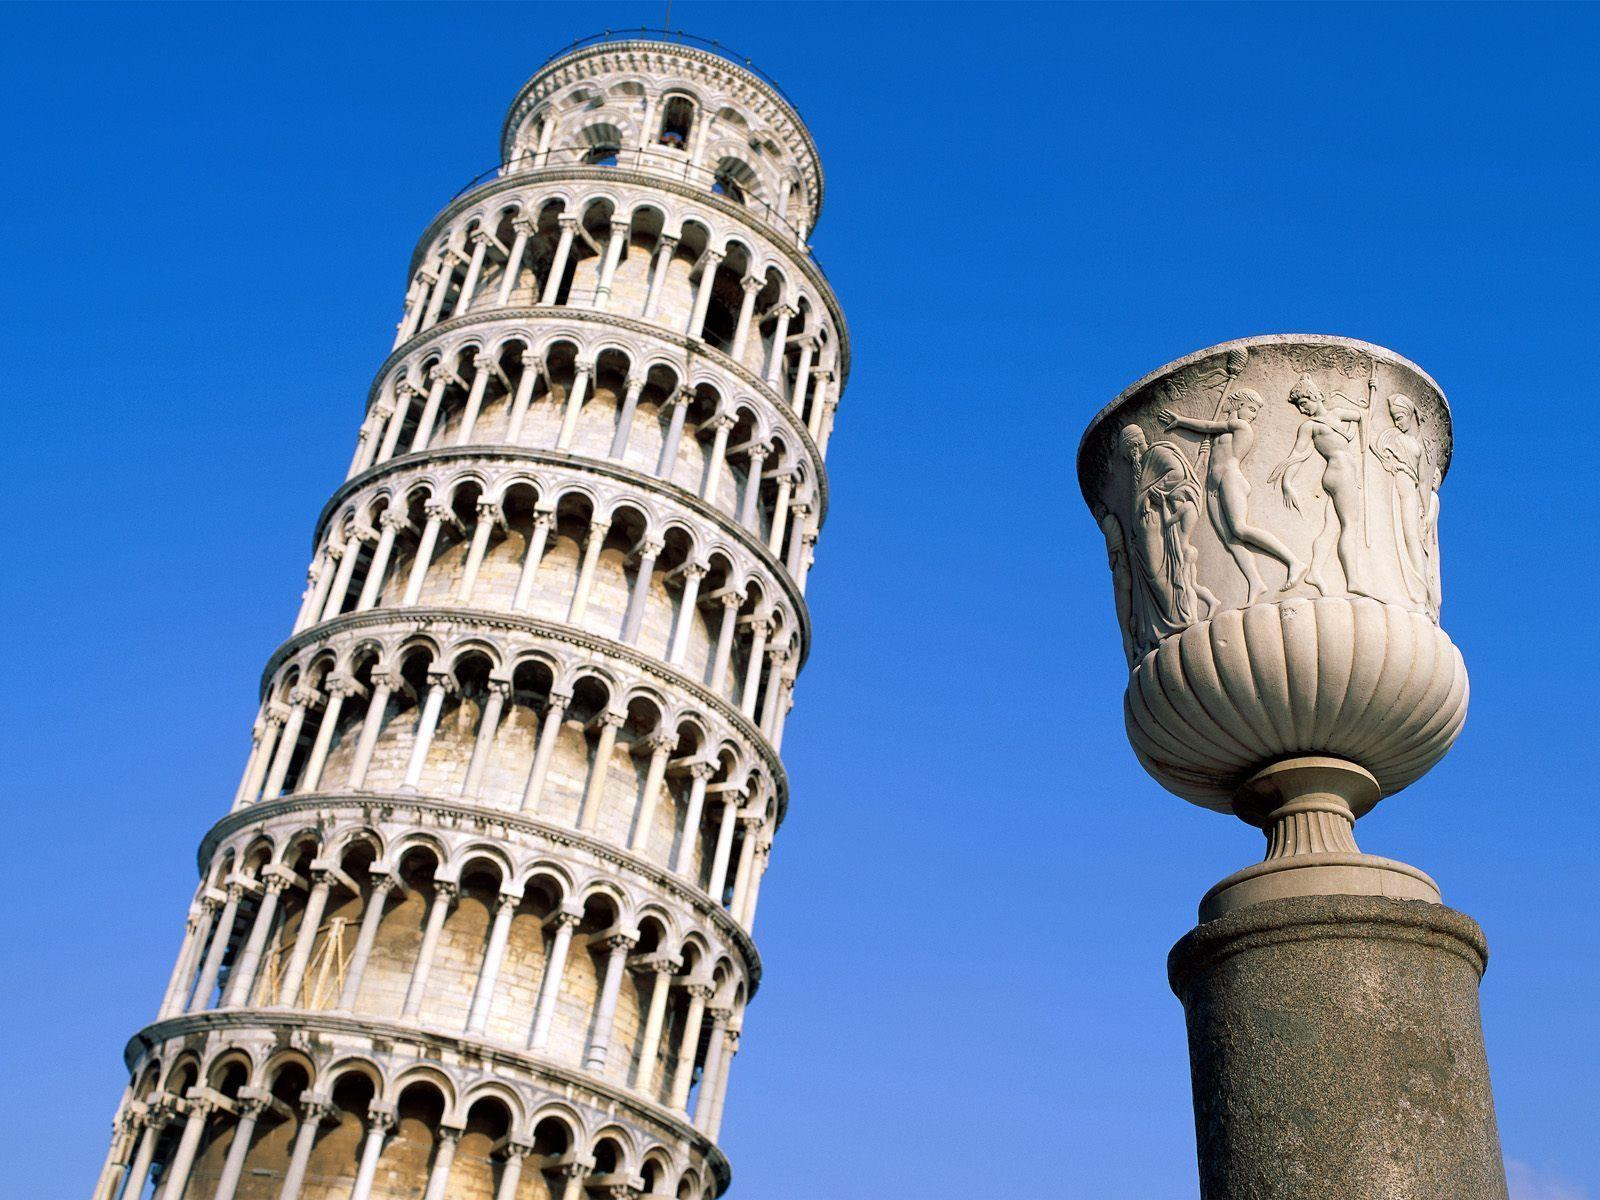 Leaning Tower Pisa Italy Wallpaper - Wide Wallpapers